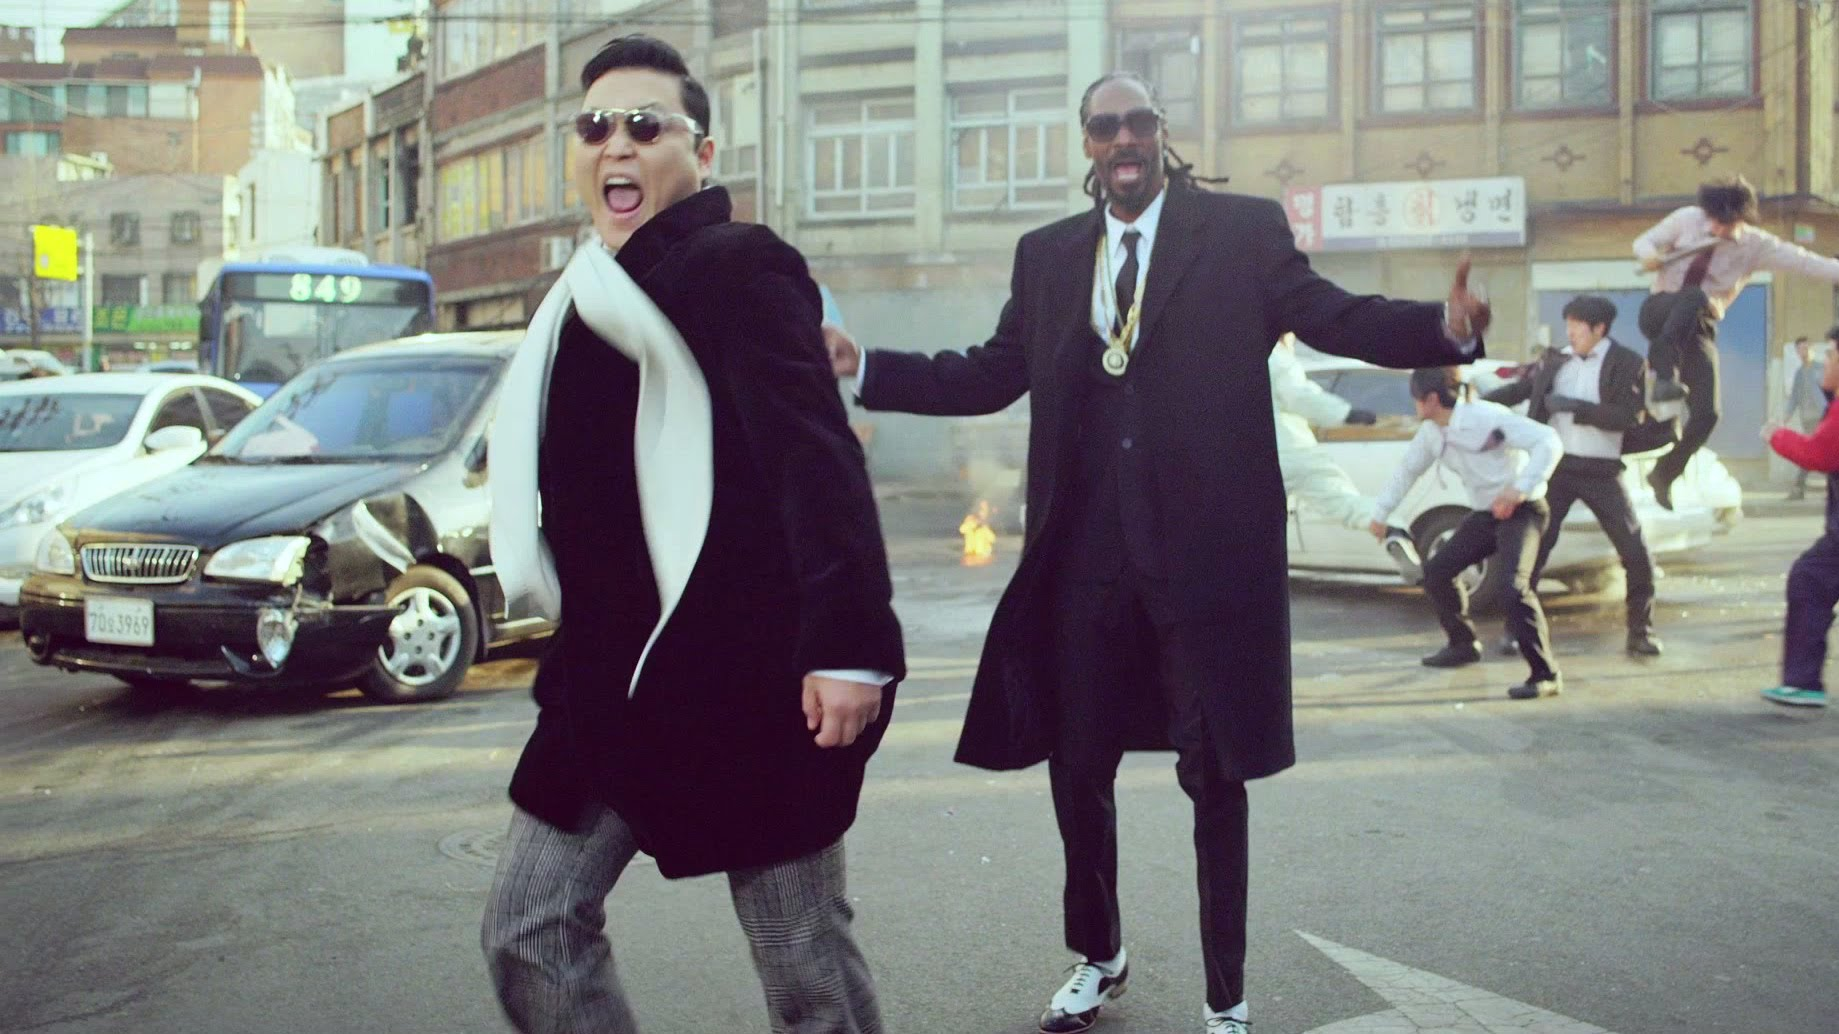 PSY – 2014 – Hangover (feat. Snoop Dogg)